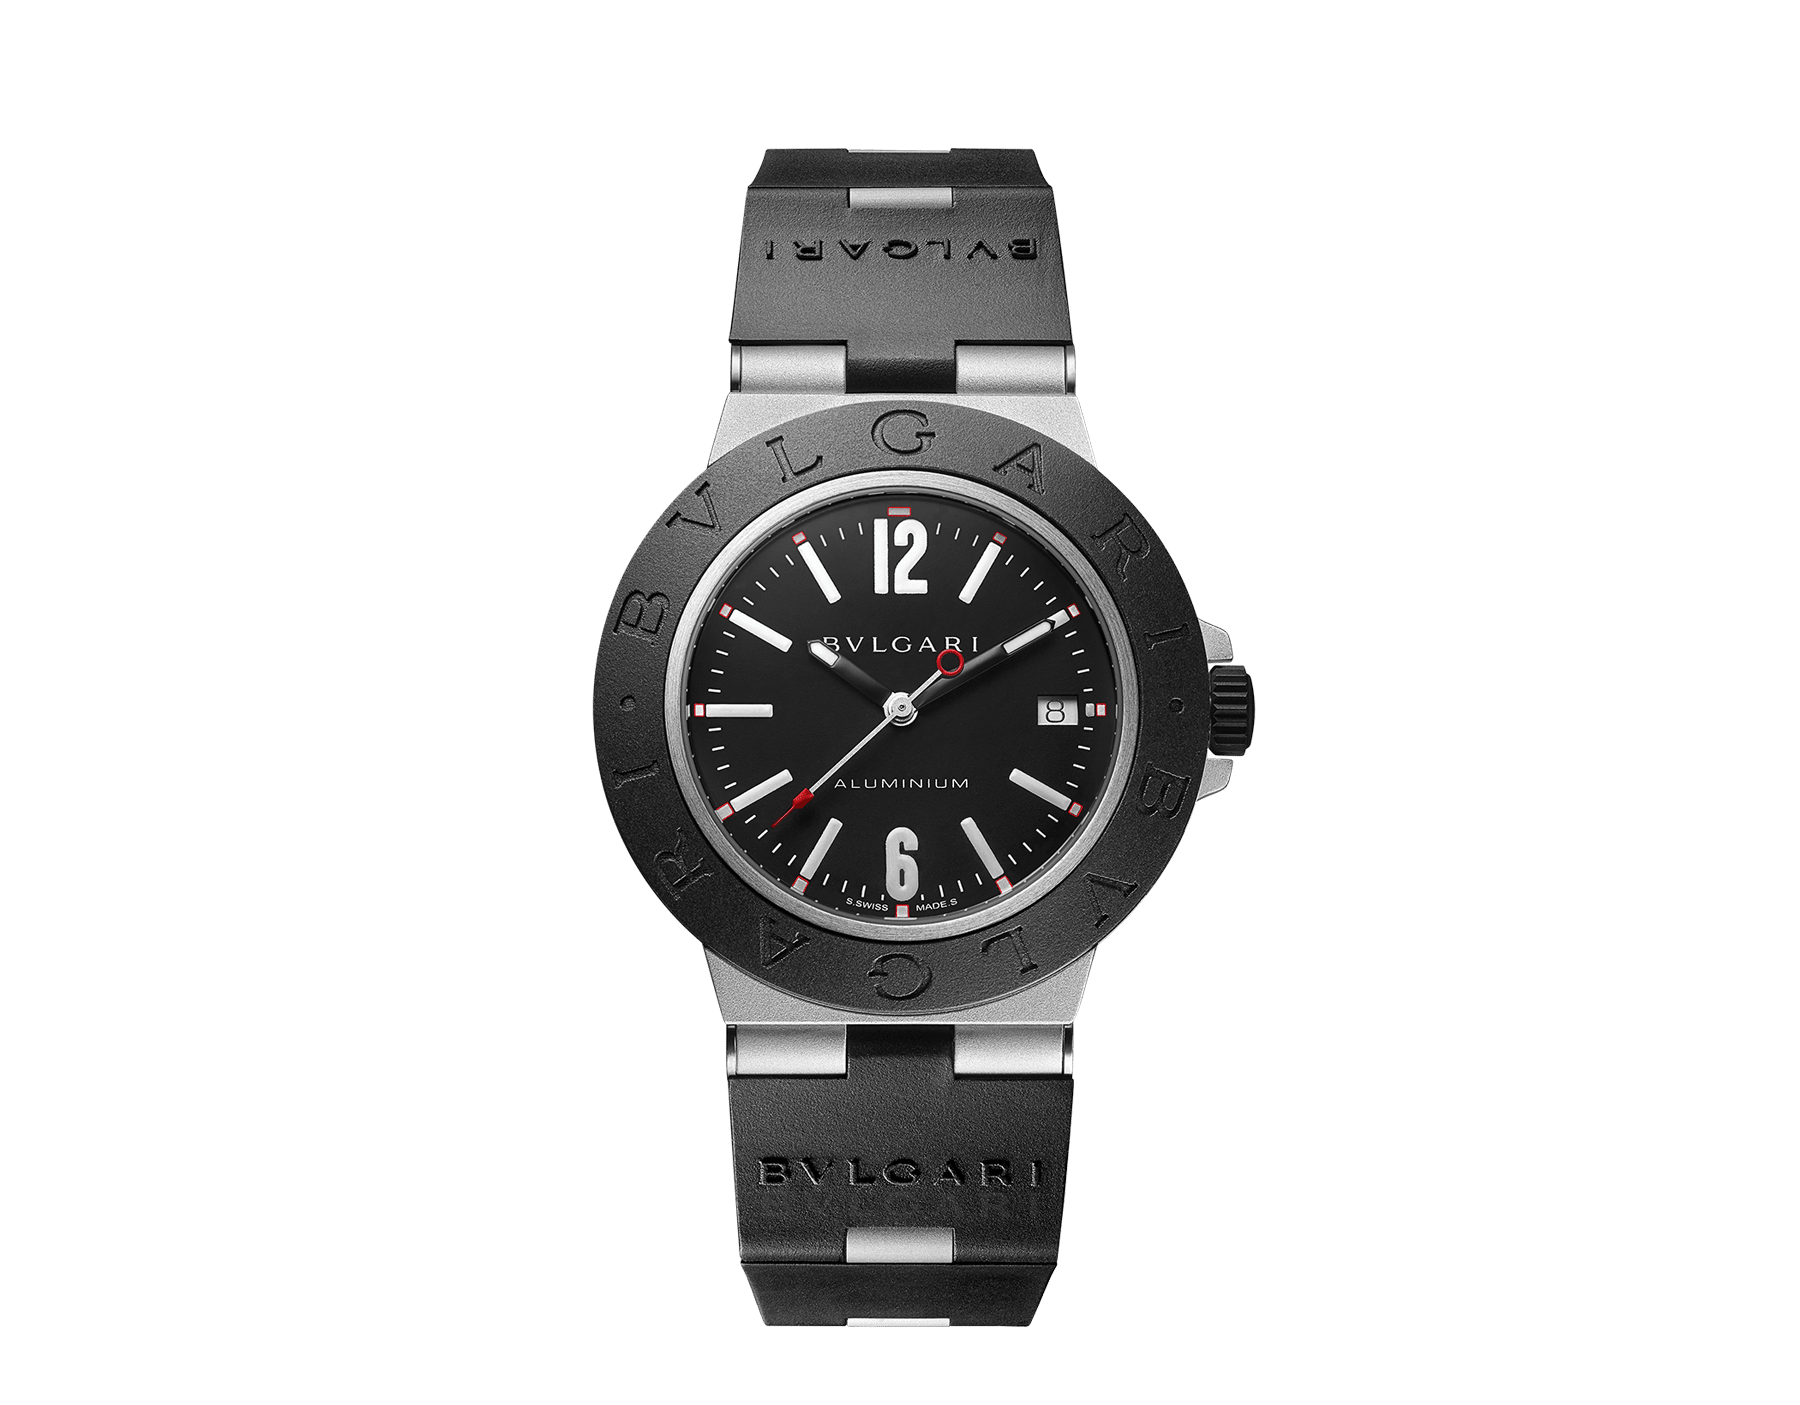 Bvlgari Aluminium watch with mechanical manufacture movement, automatic winding, 40 mm aluminium and titanium case, black rubber bezel with BVLGARI BVLGARI engraving, black dial and black rubber bracelet. Water resistant up to 100 metres 103445 image 1